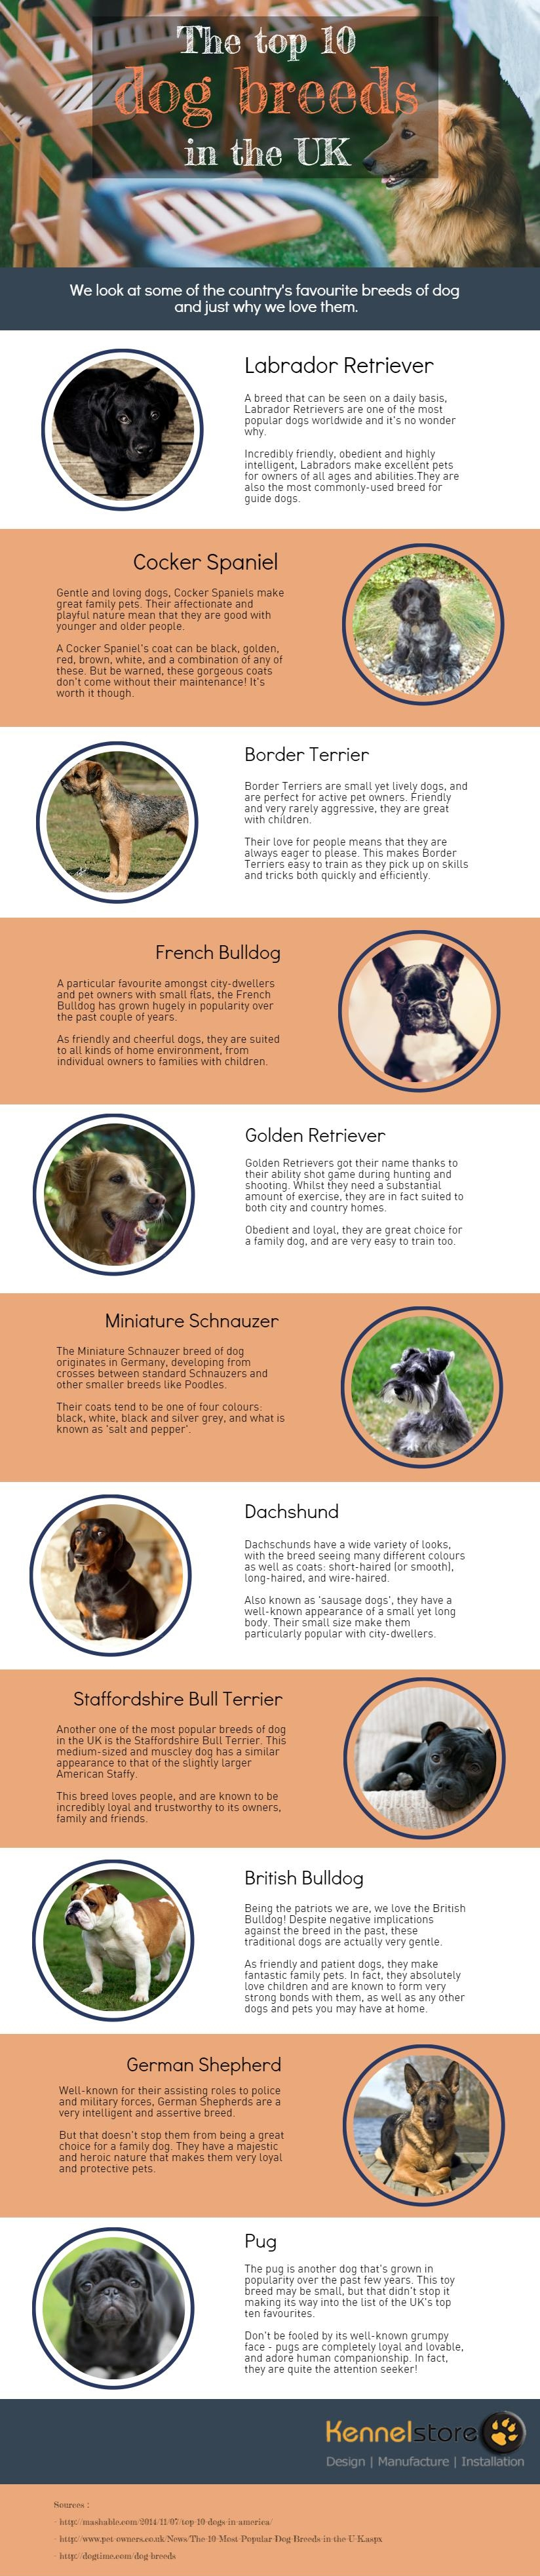 Top Ten Dog Breeds in the UK